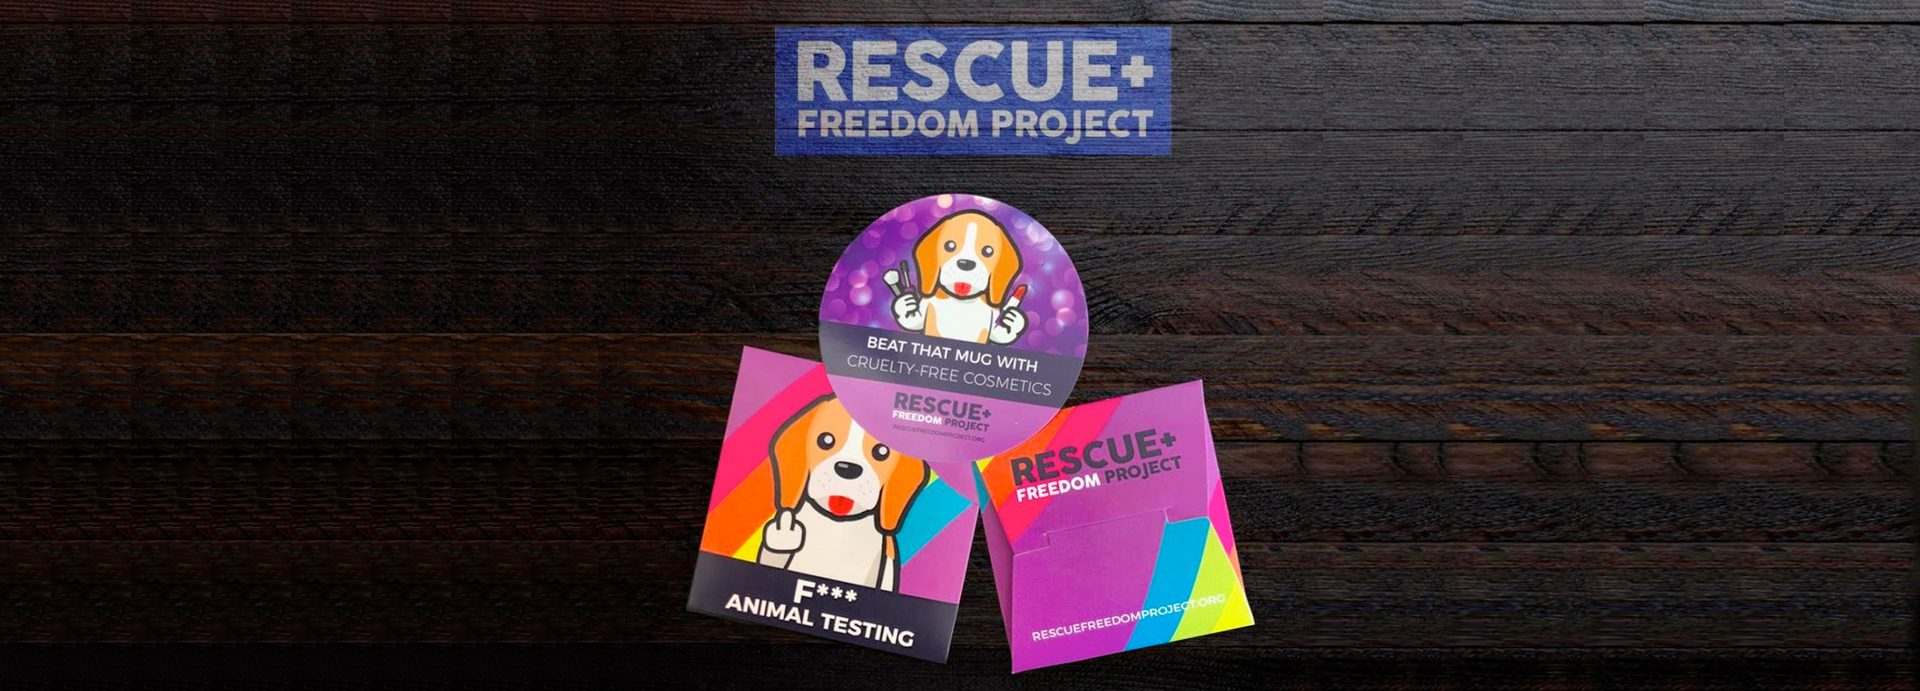 Condoms, Cosmetics & Cruelty: Putting an End to Animal Testing with Beagle Freedom Project